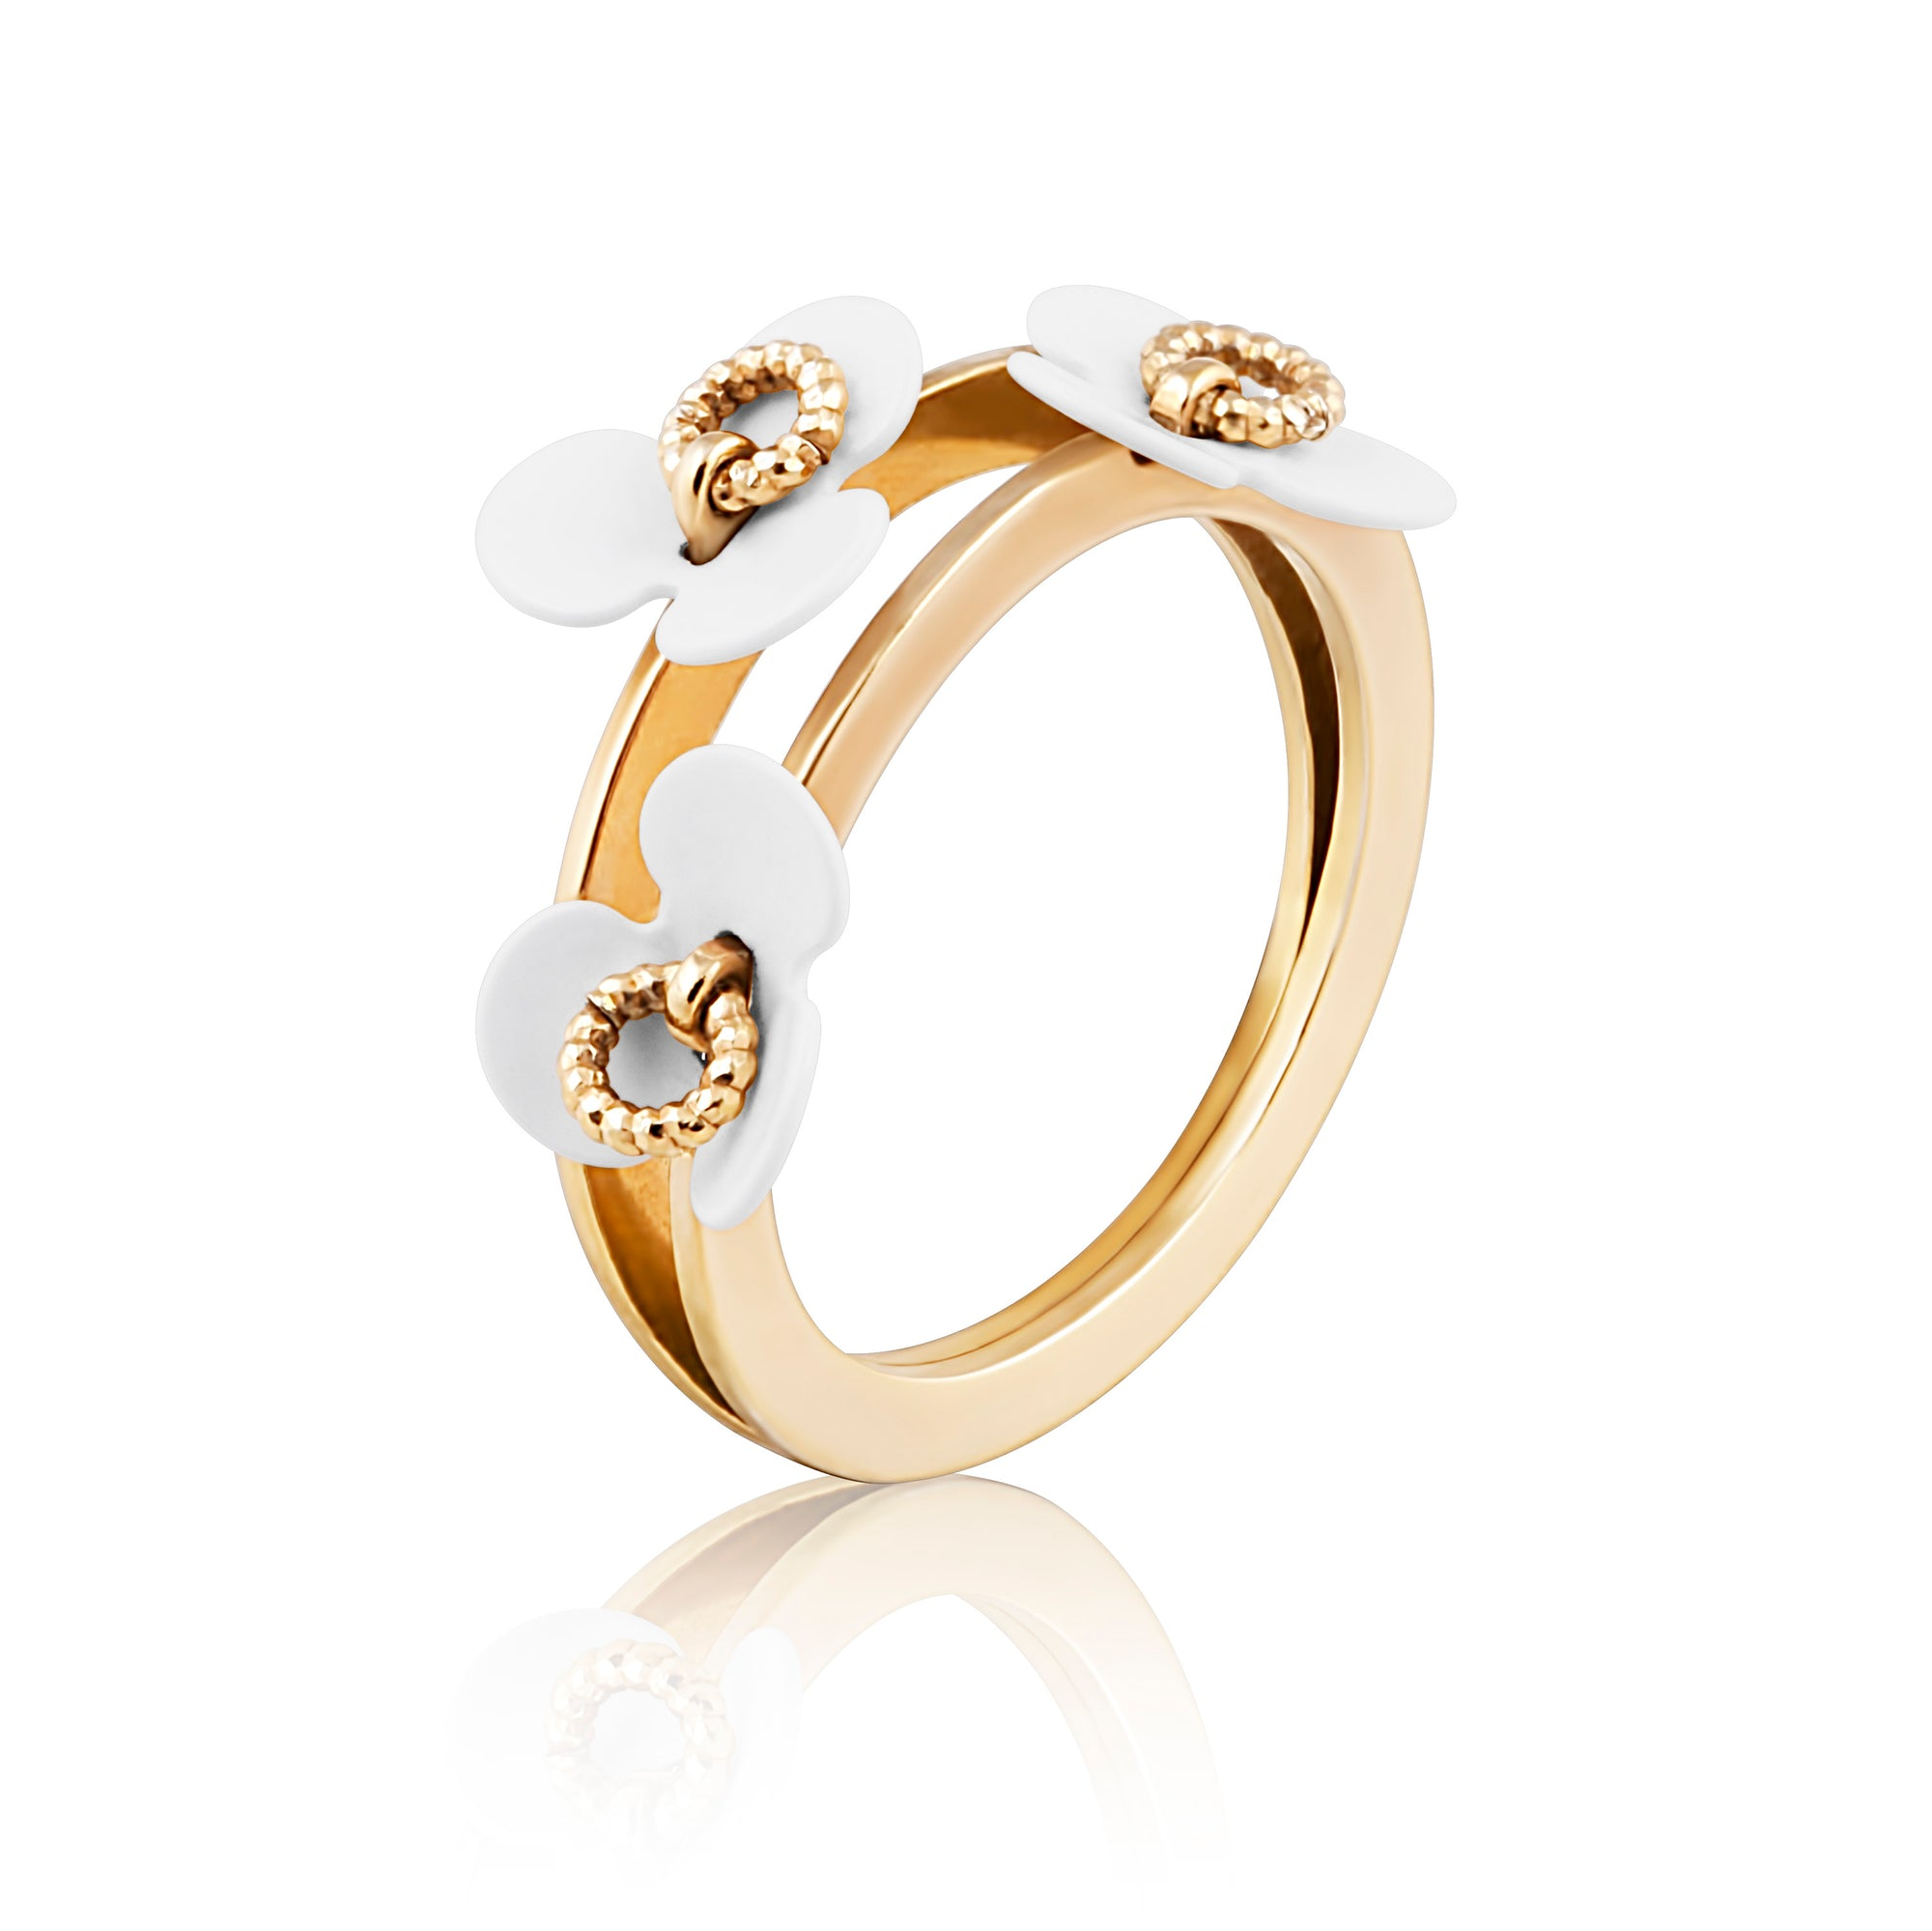 Idalia Jewelry-The Flower Ring